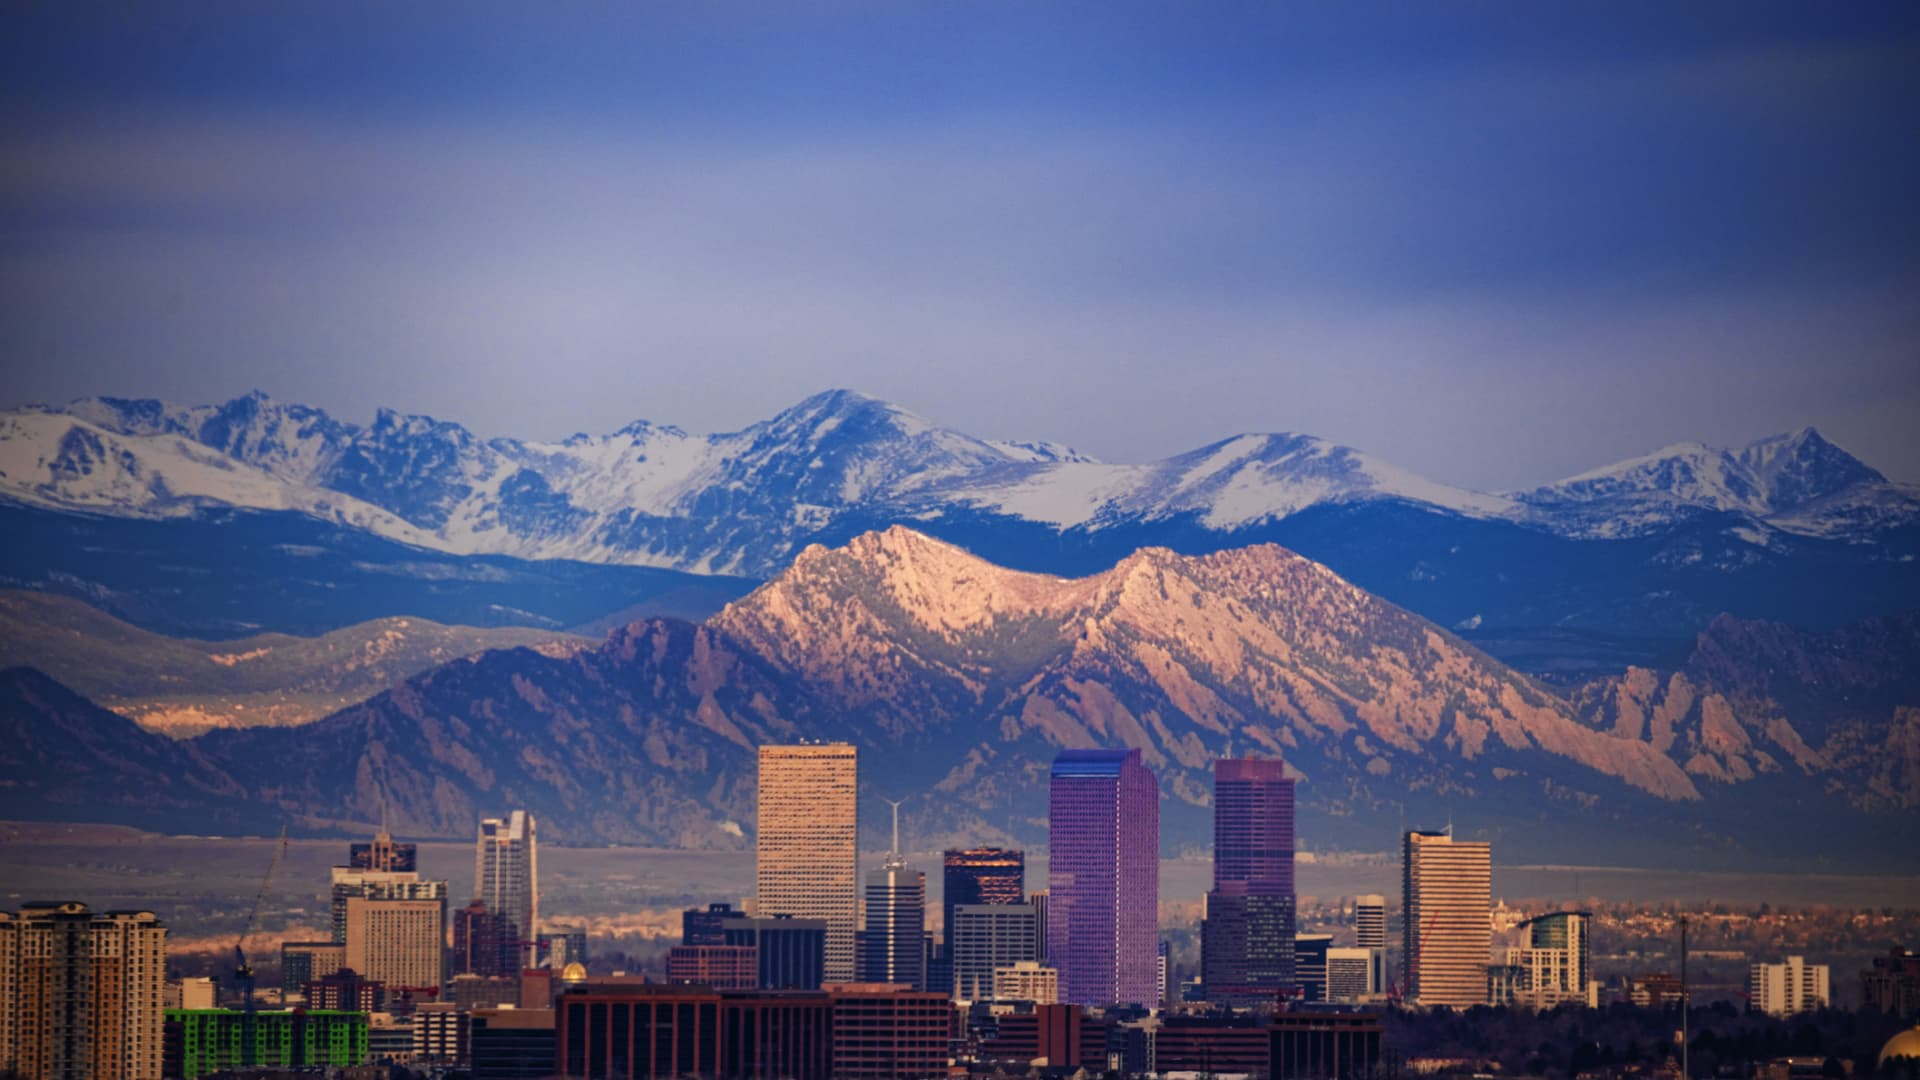 Downtown Denver, the Flatirons and Longs Peak in Colorado.